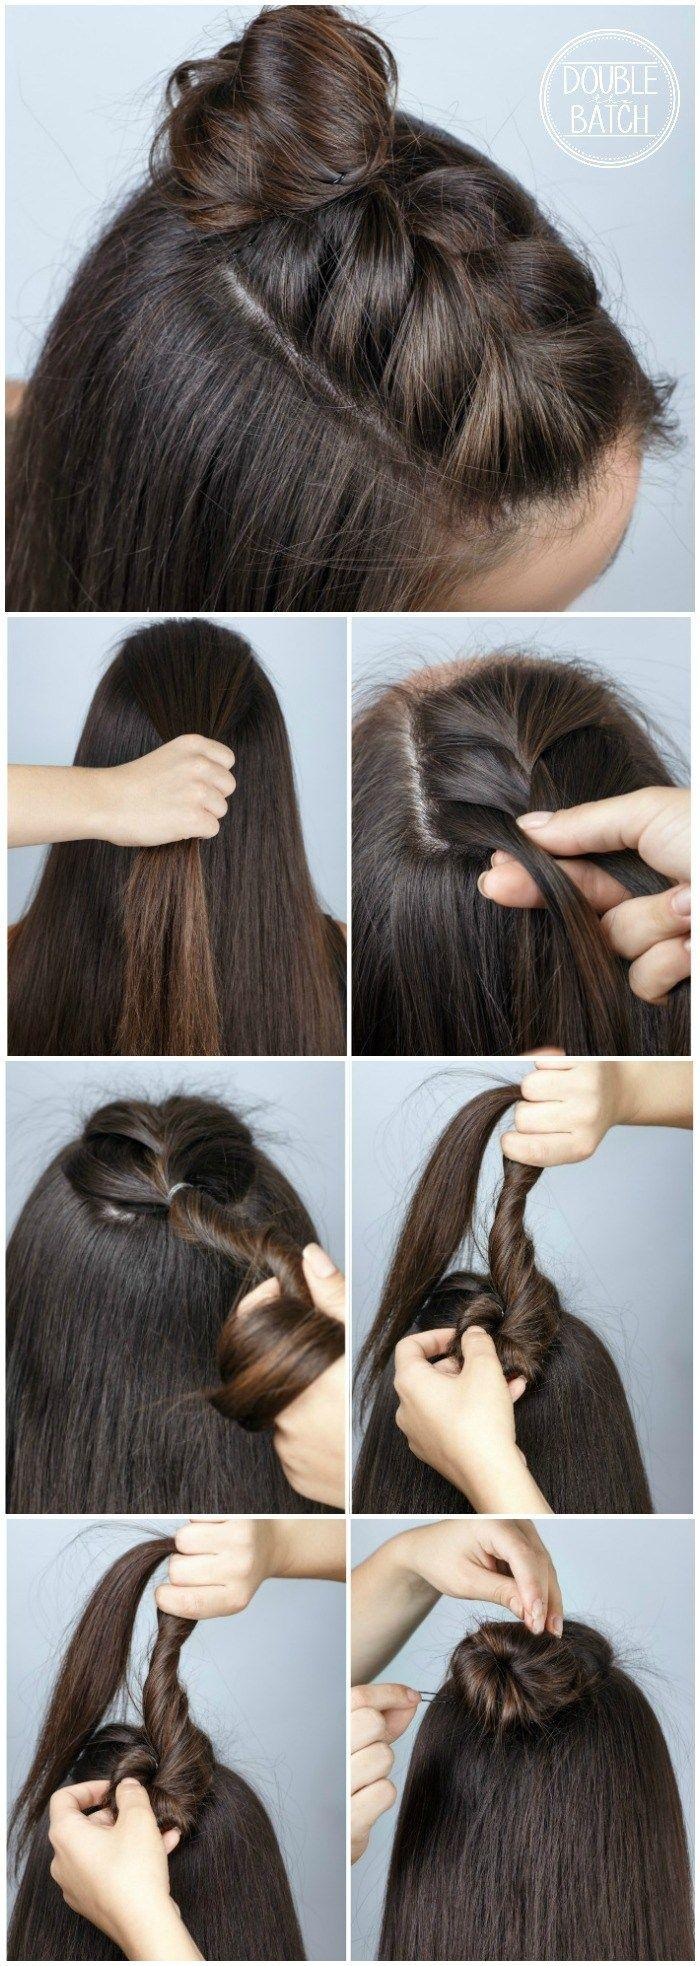 Mariage - Fun Way To Change Up Your Hair! Cute Half Braid! Love This Easy Hairstyle